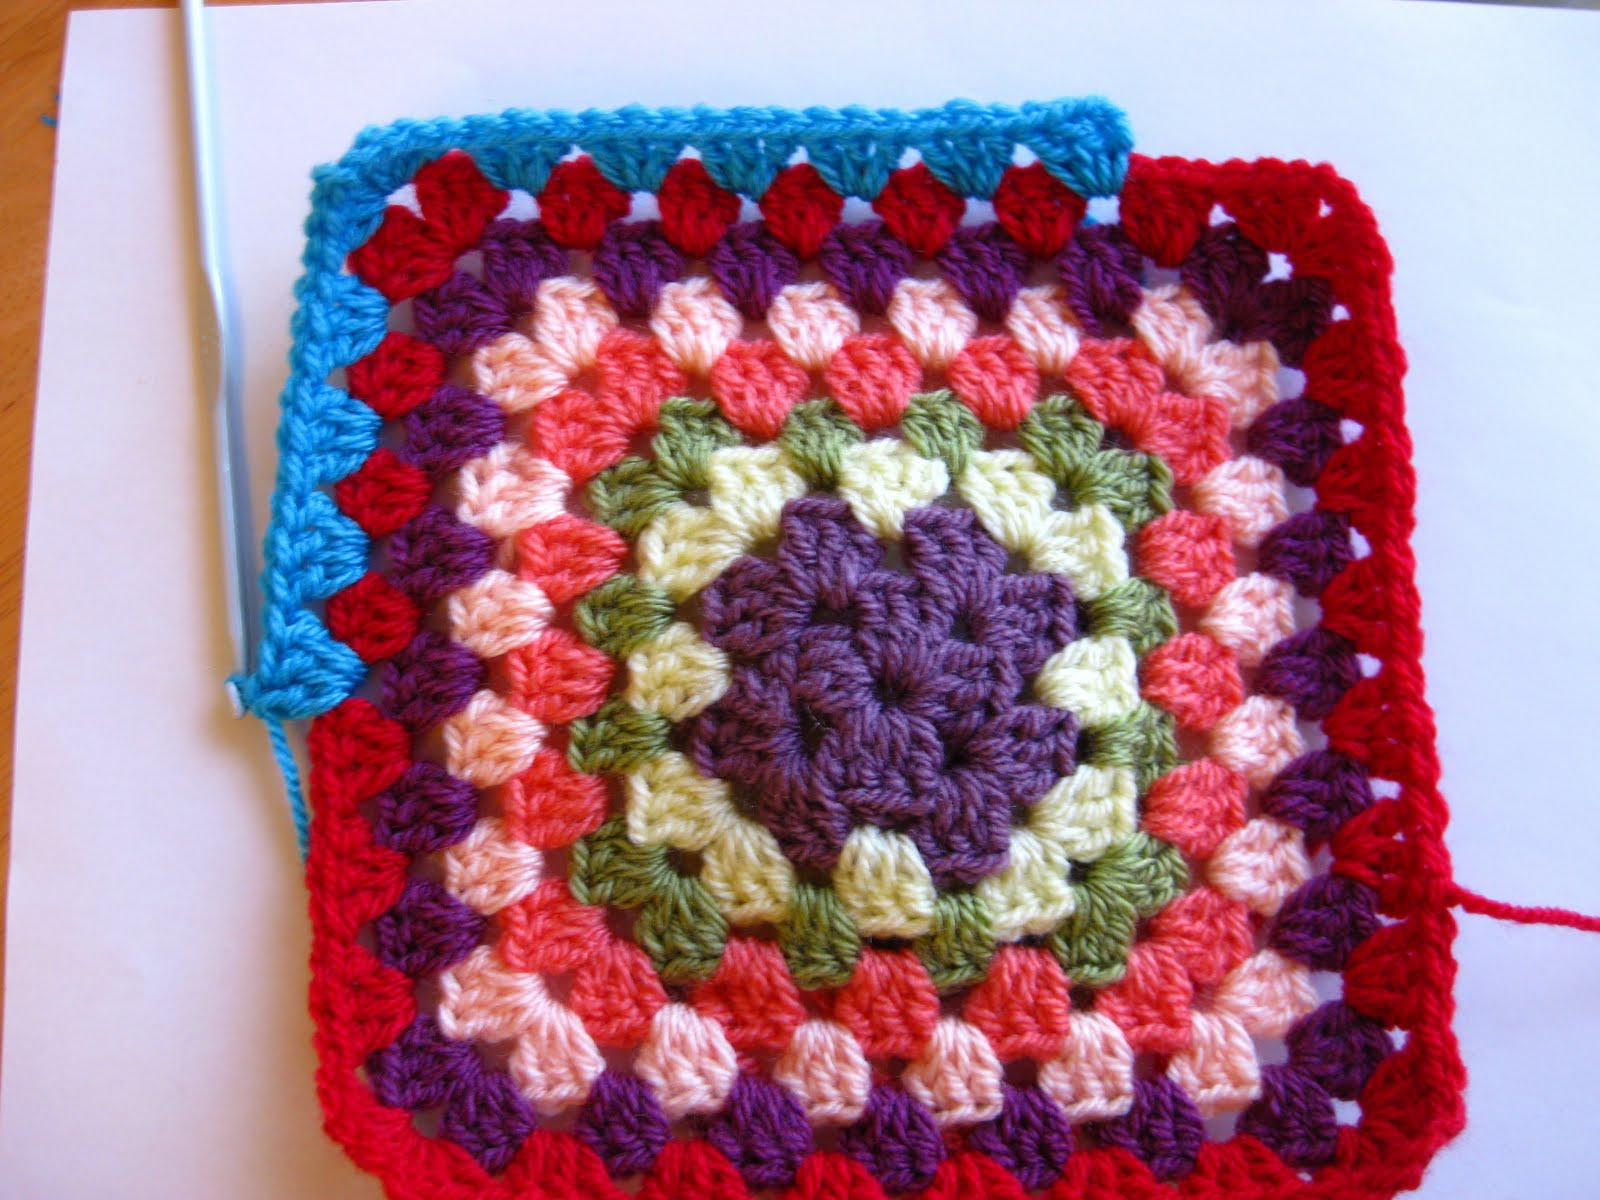 Crochet Granny Square : Bunny Mummy: How to crochet a Granny Square